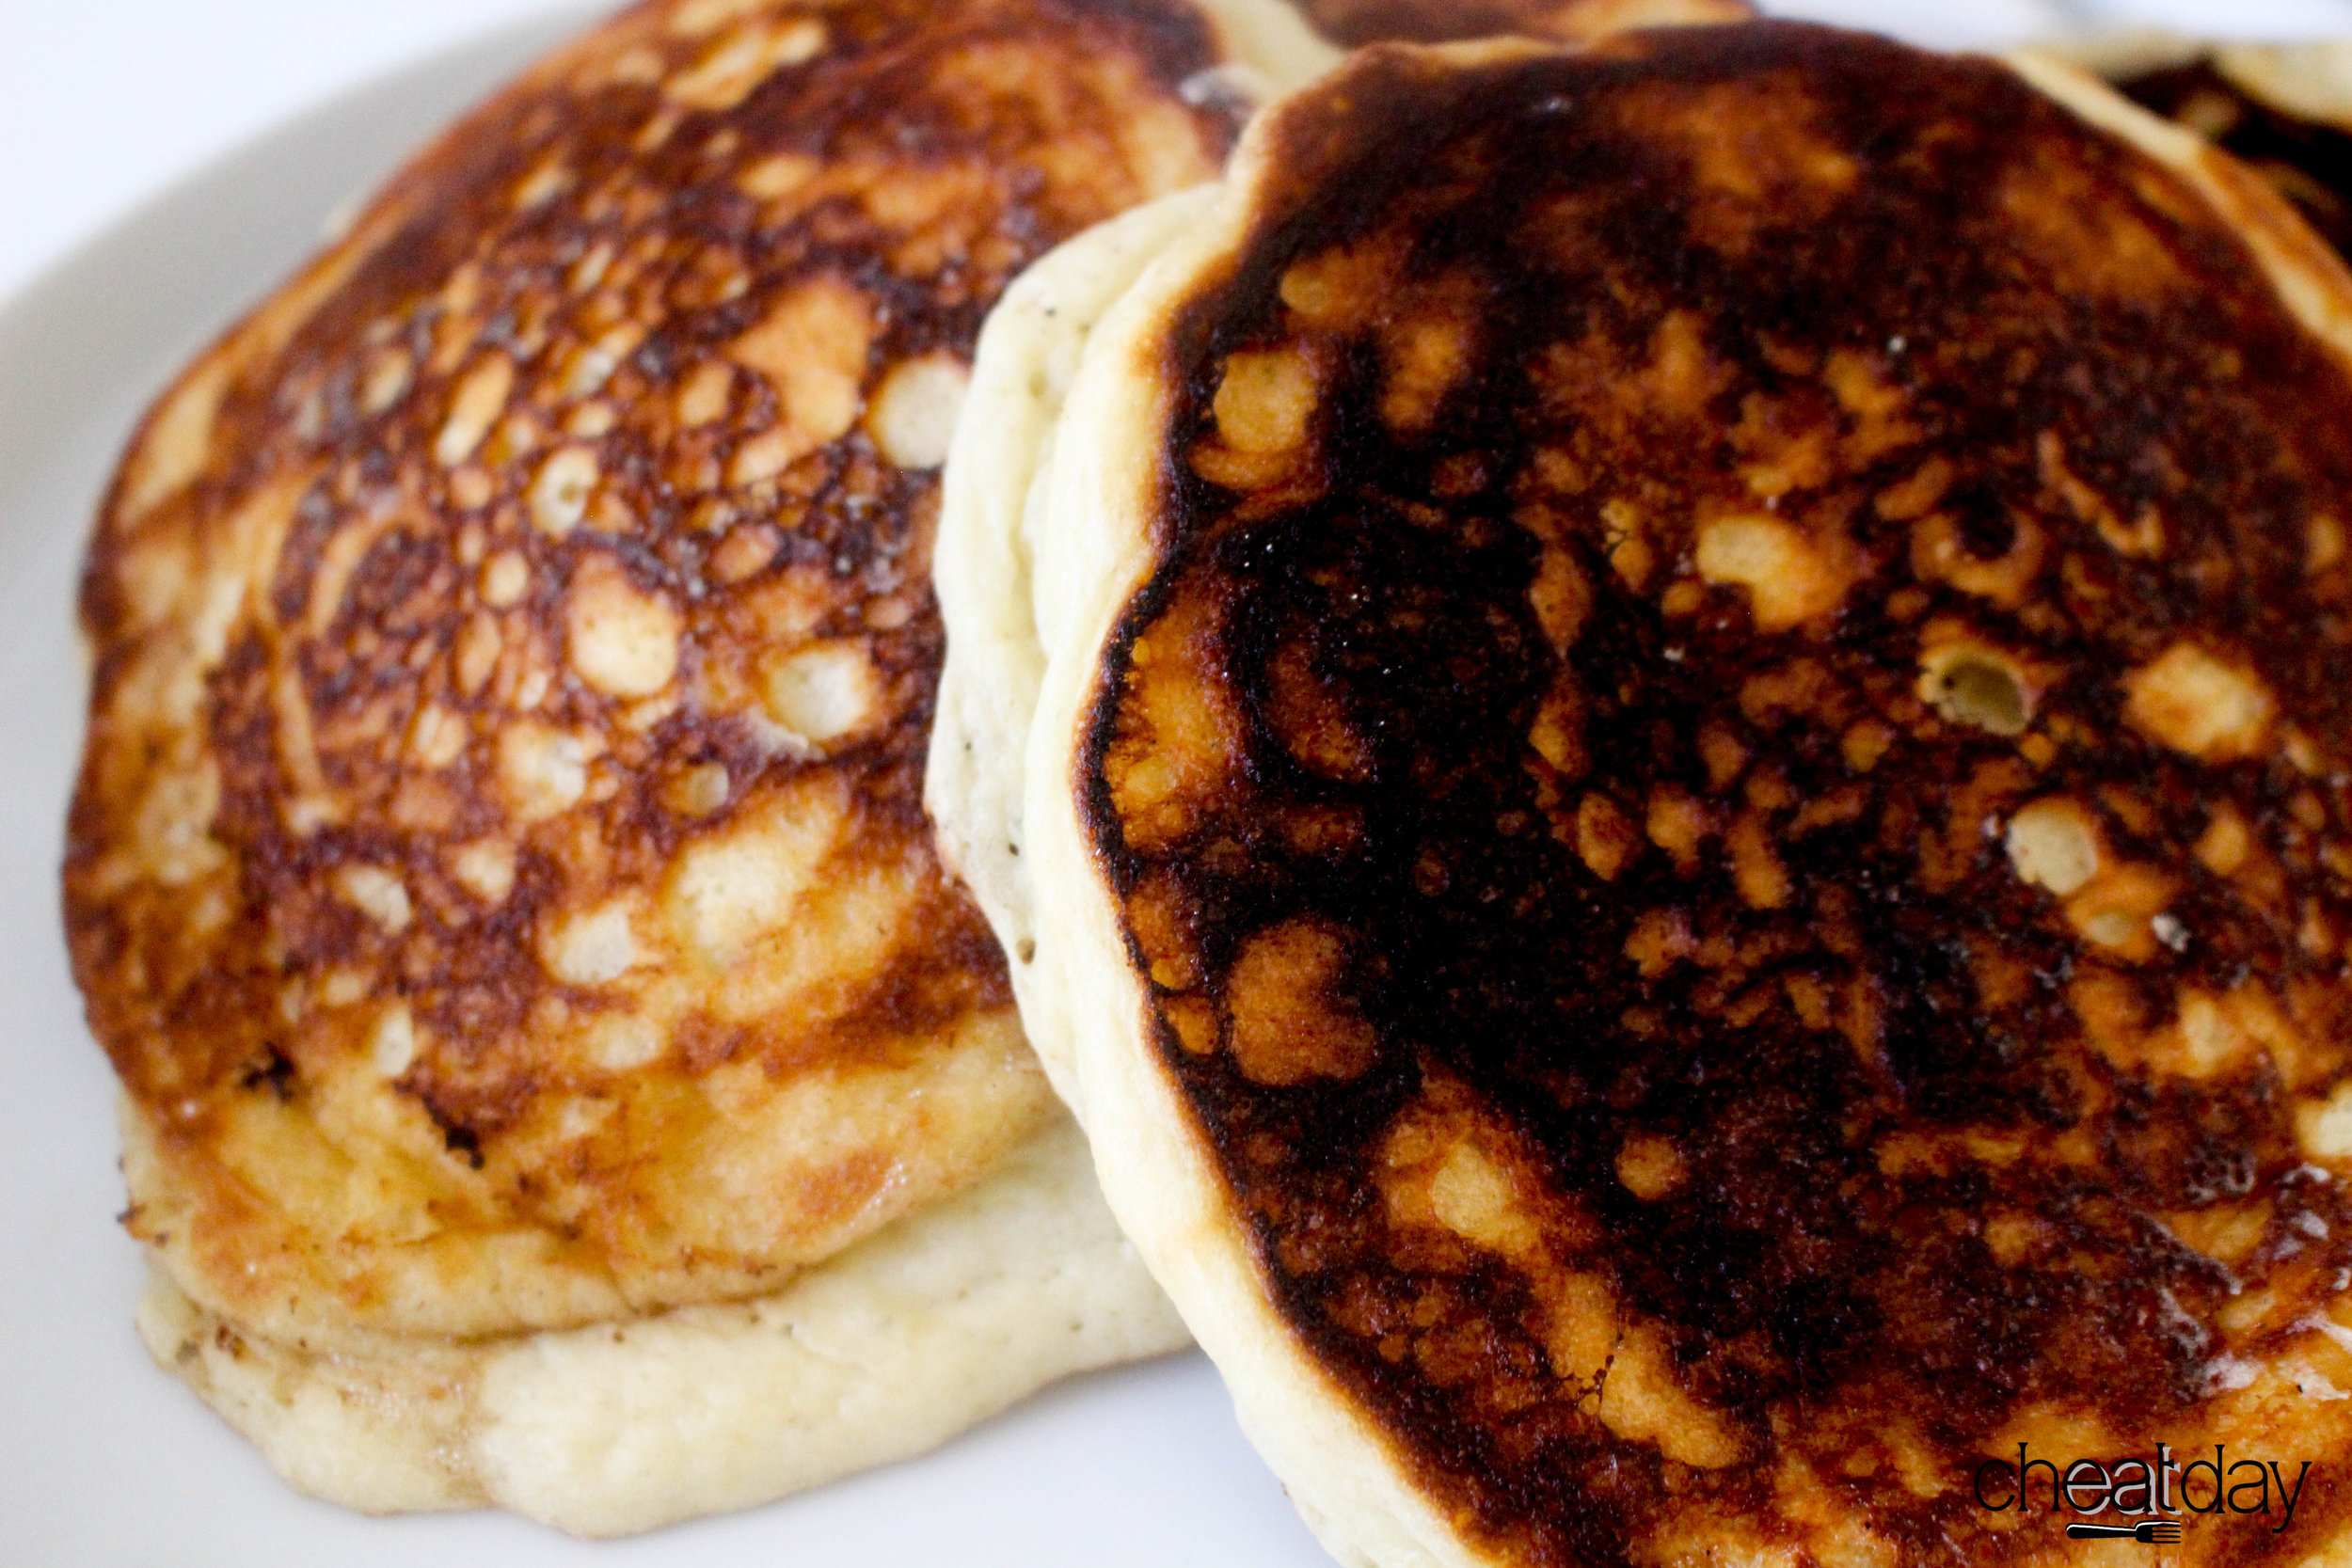 Making delicious pancakes batter and toppings I can do. Cooking pancakes...well...I'm working on it!